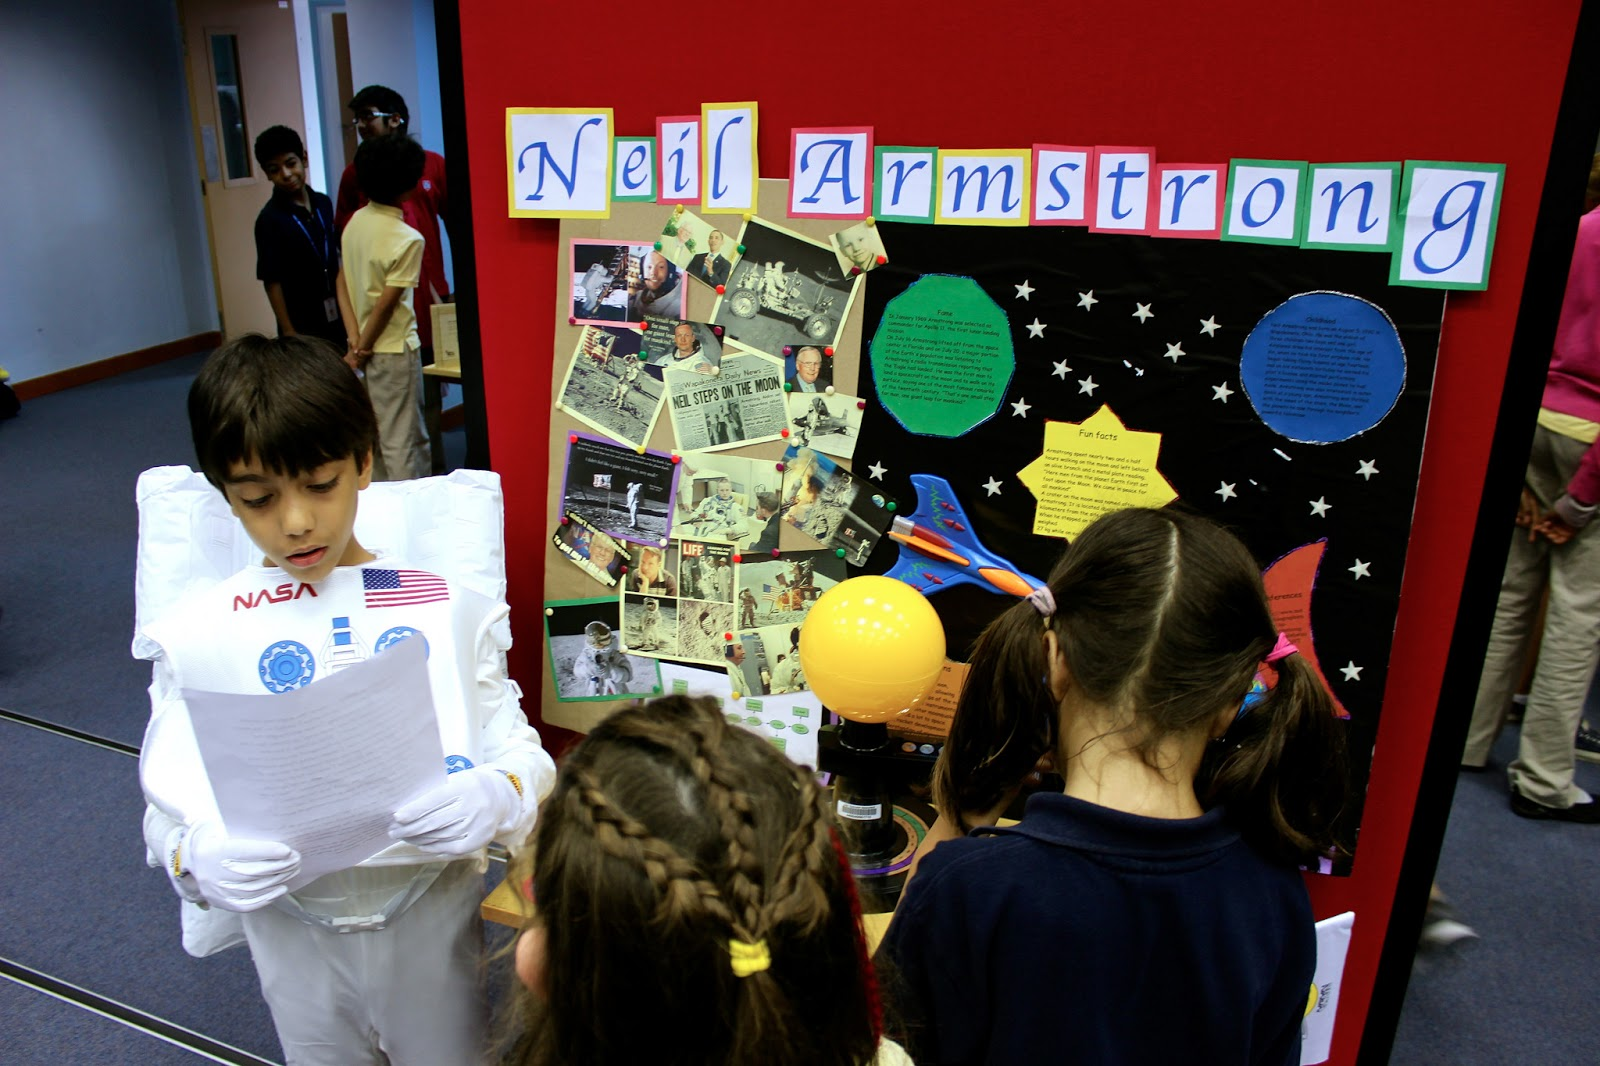 wax museum neil armstrong - photo #19